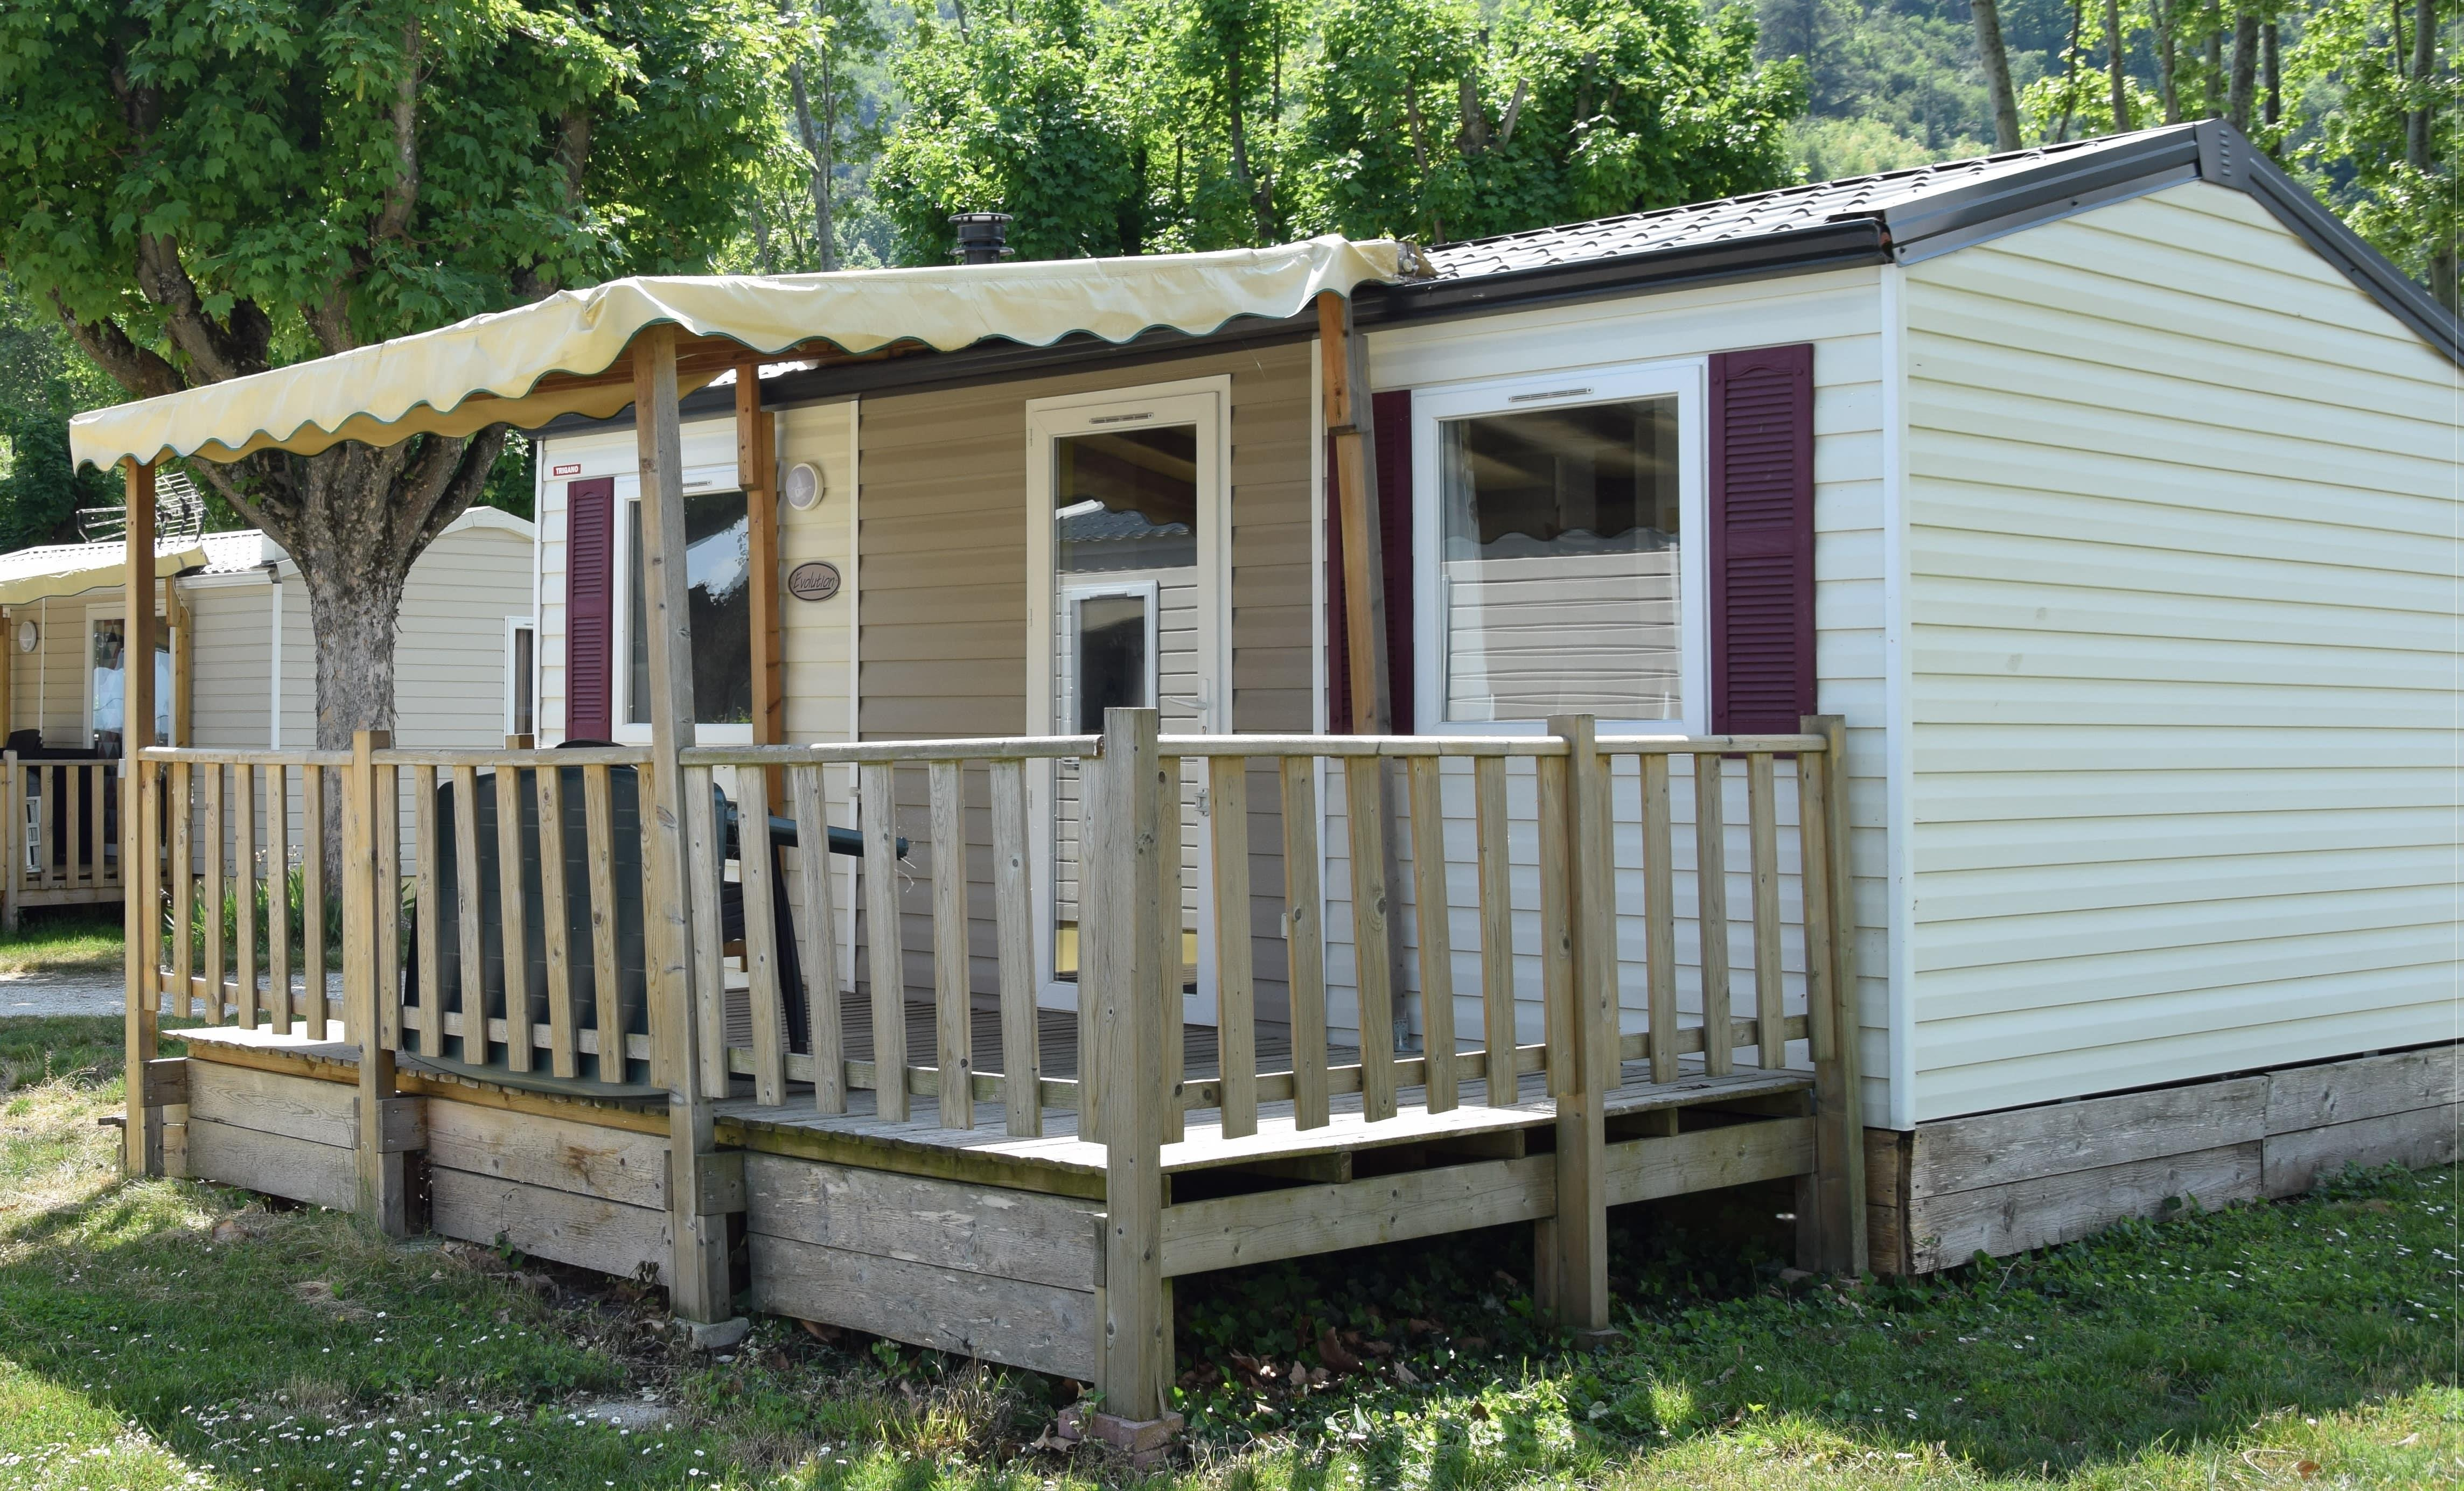 Mietunterkunft - Mobilheim 25 M2, 2 Bedrooms, Bathroom And Toilets Separated, With Decking And Air-Conditioning - Camping Le Rhône